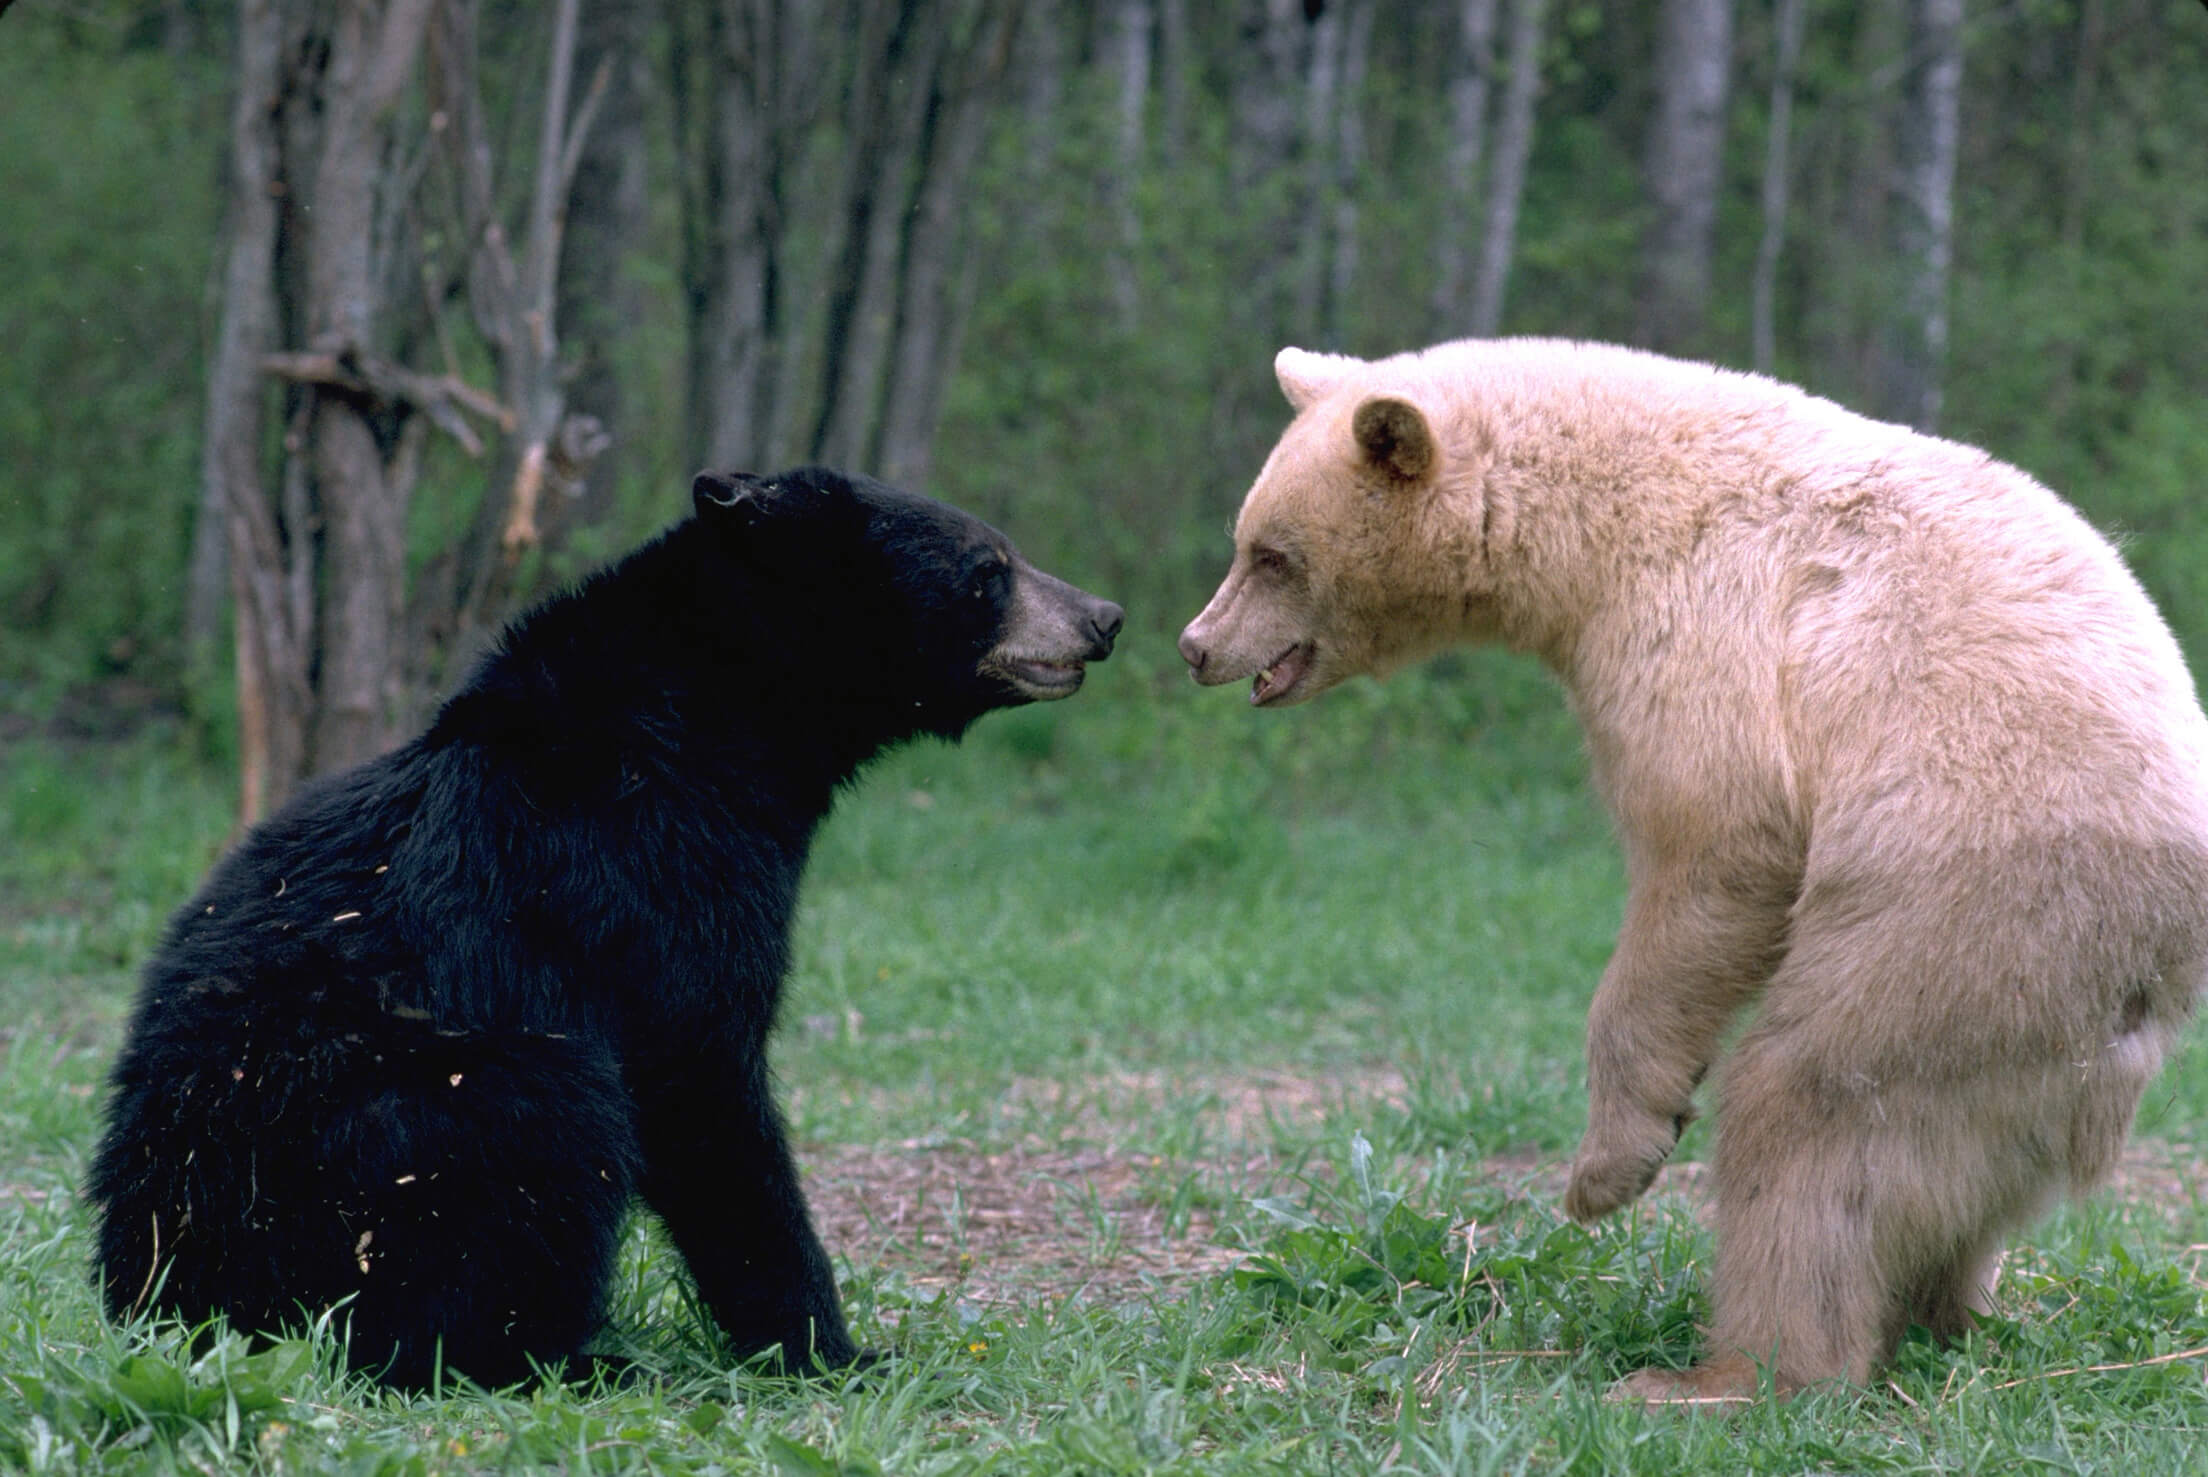 Black and White Black Bears